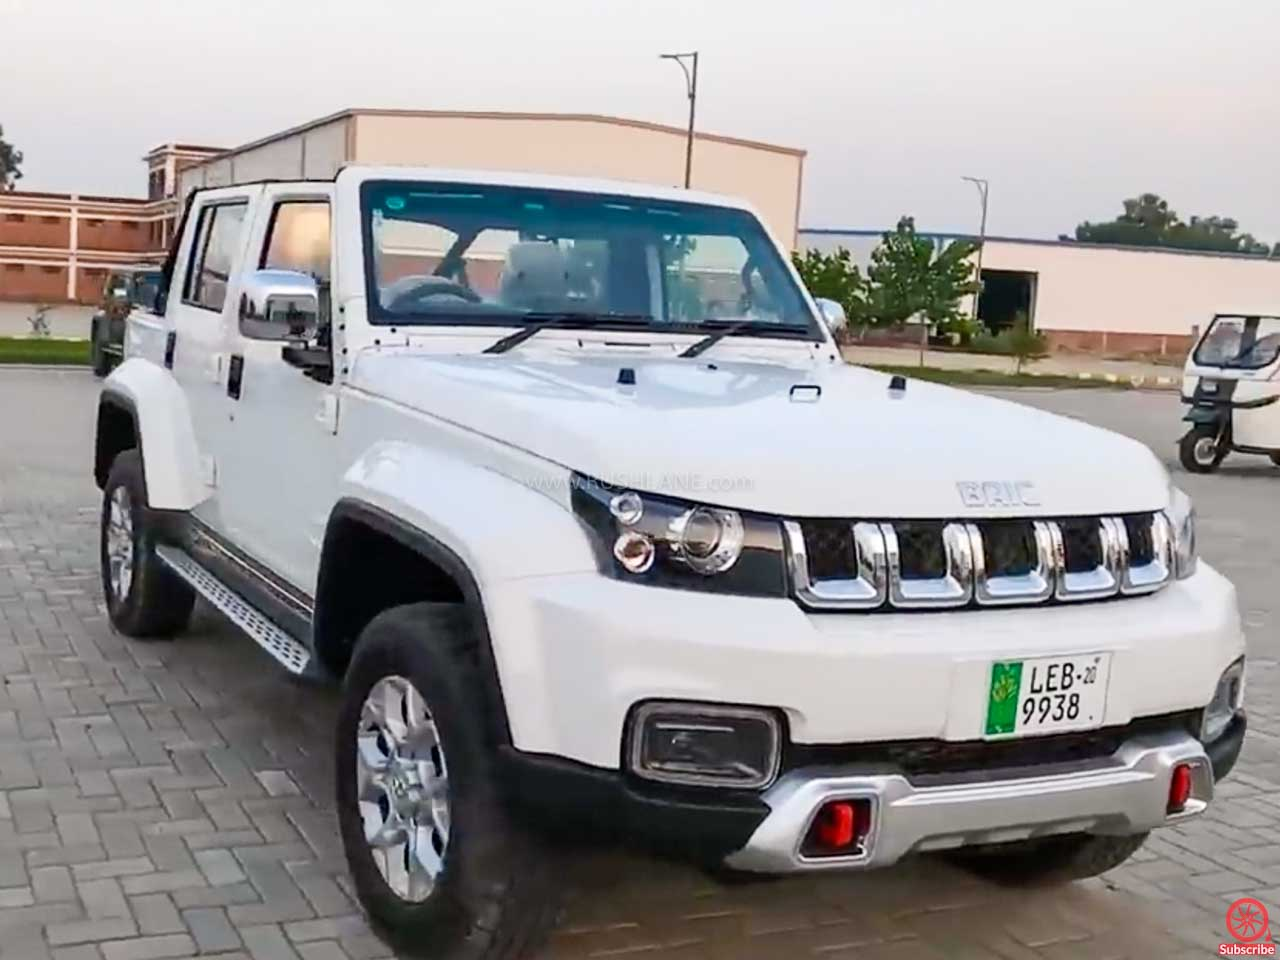 China Made Jeep Wrangler Copy Cat Suvs Launched In Pakistan